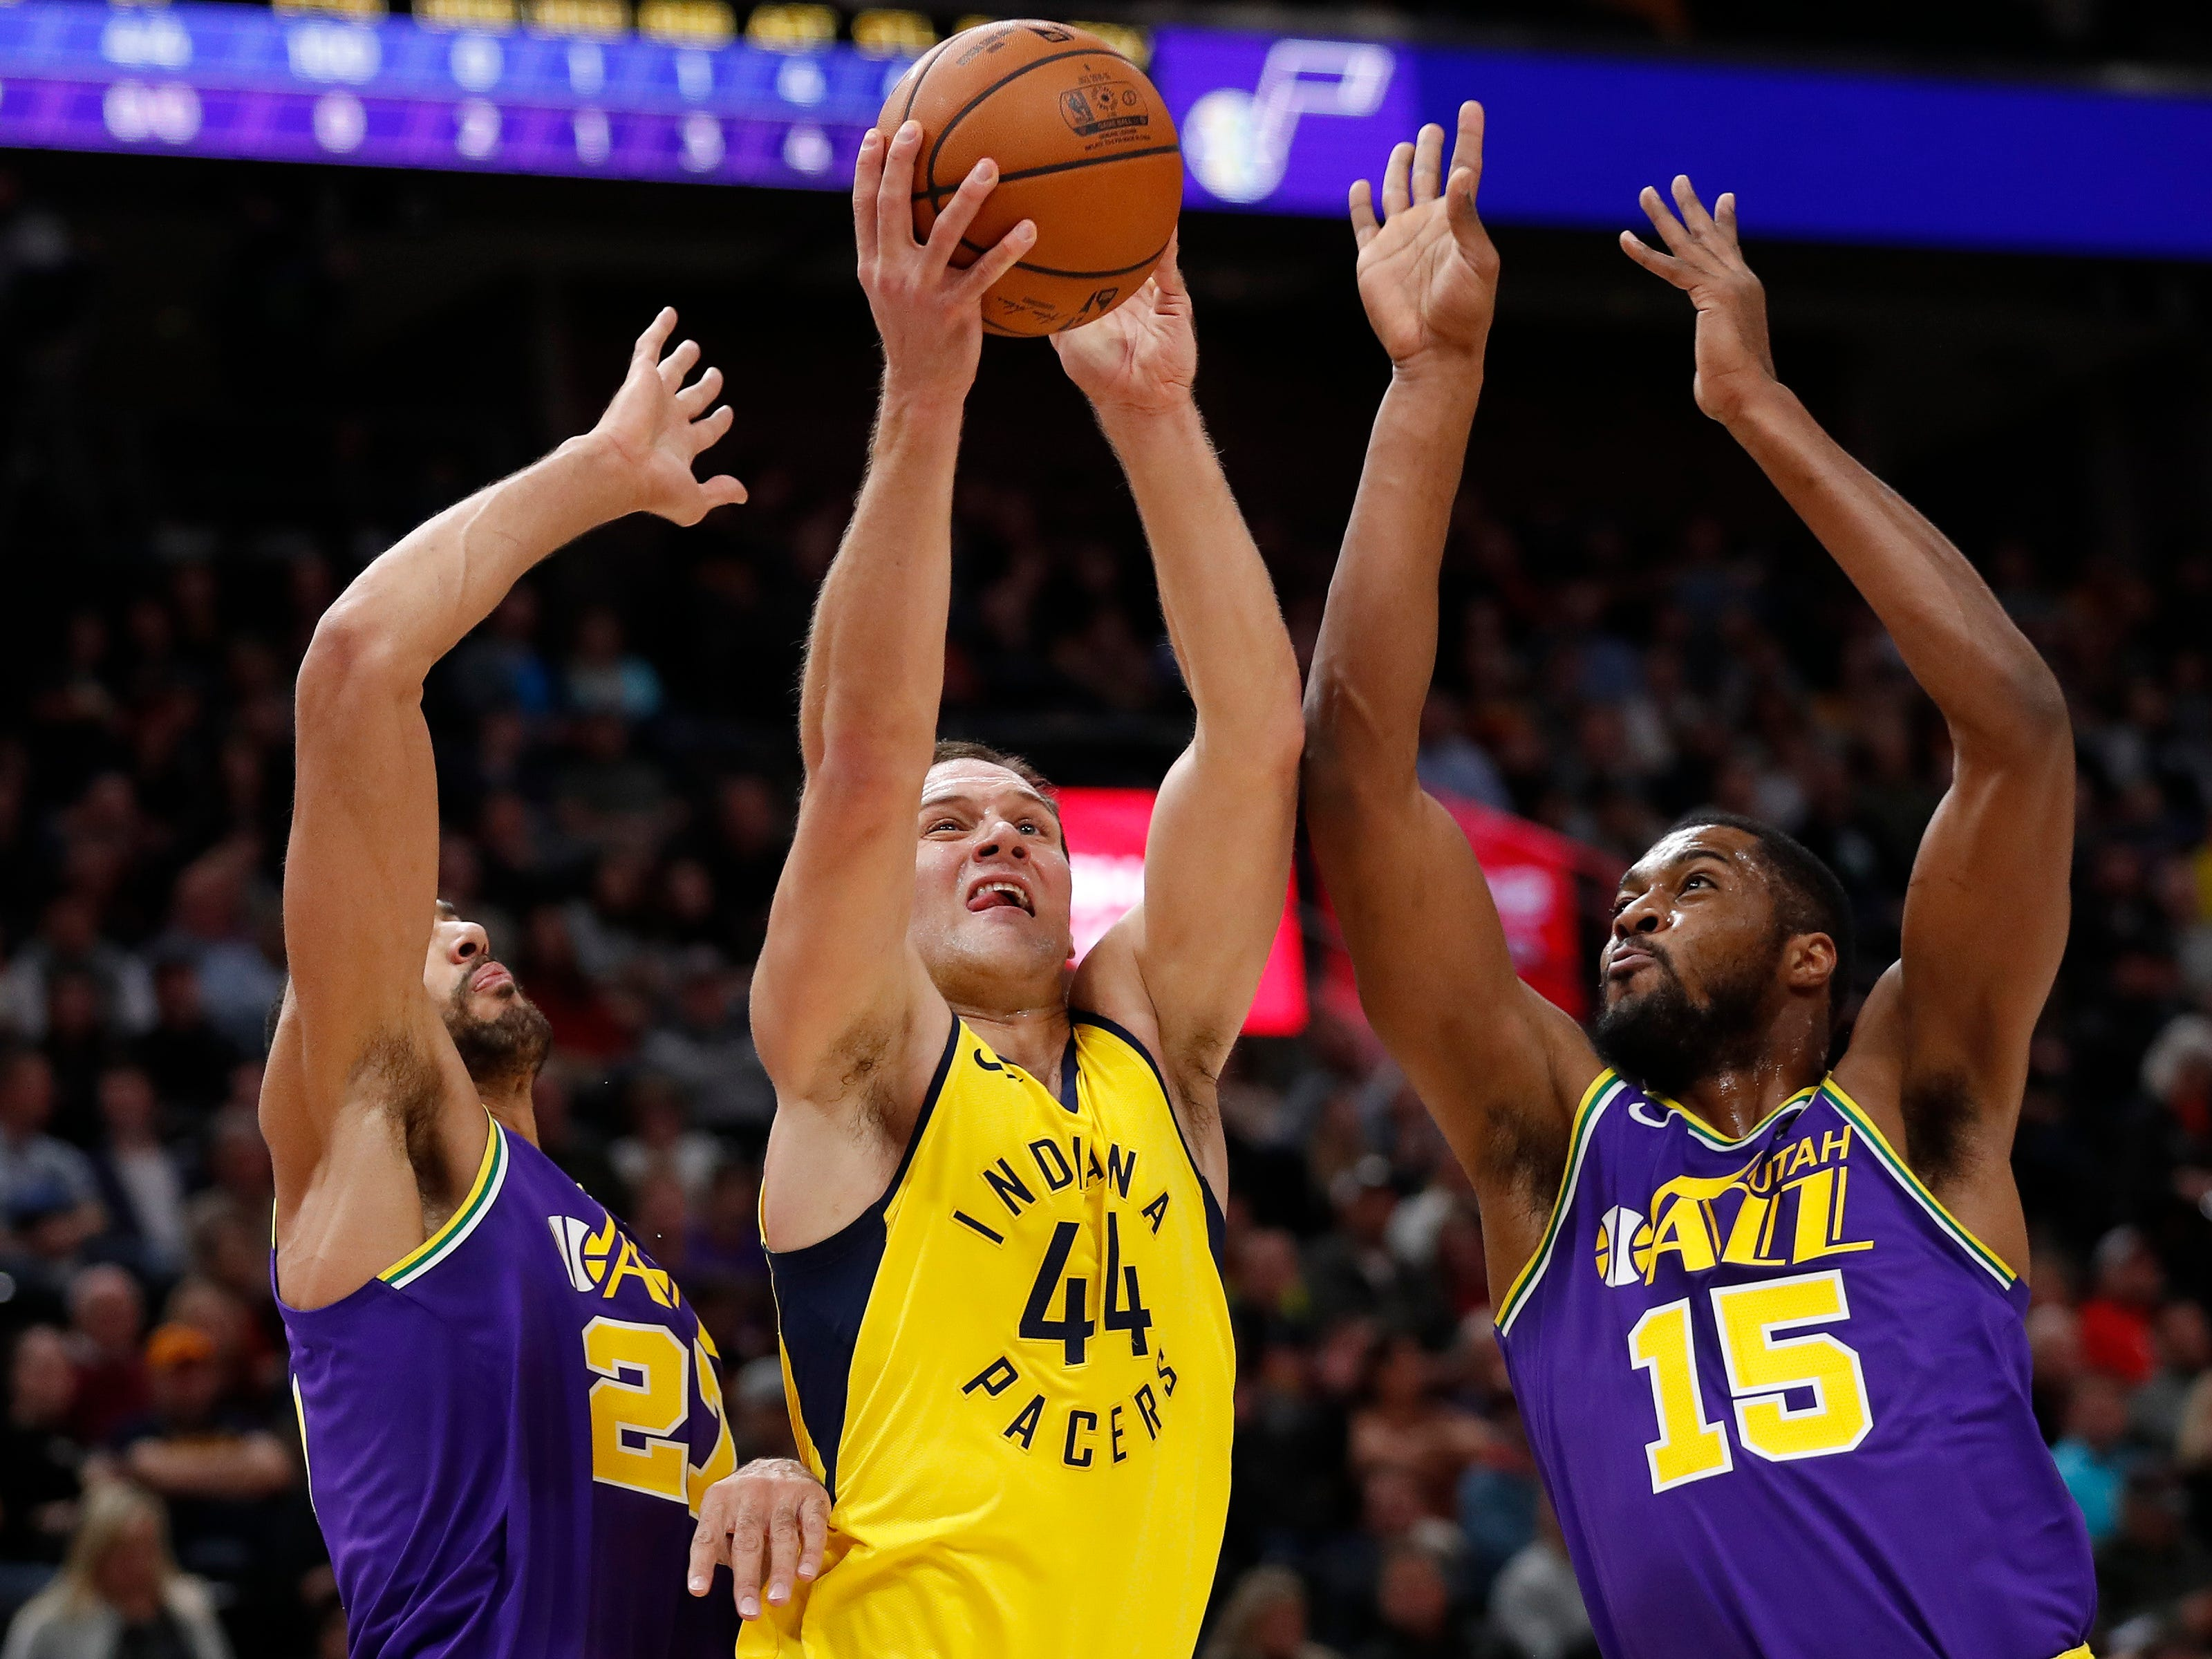 Indiana Pacers forward Bojan Bogdanovic (44) shoots against Utah Jazz center Rudy Gobert (27) and Utah Jazz forward Derrick Favors (15) in the first quarter at Vivint Smart Home Arena.